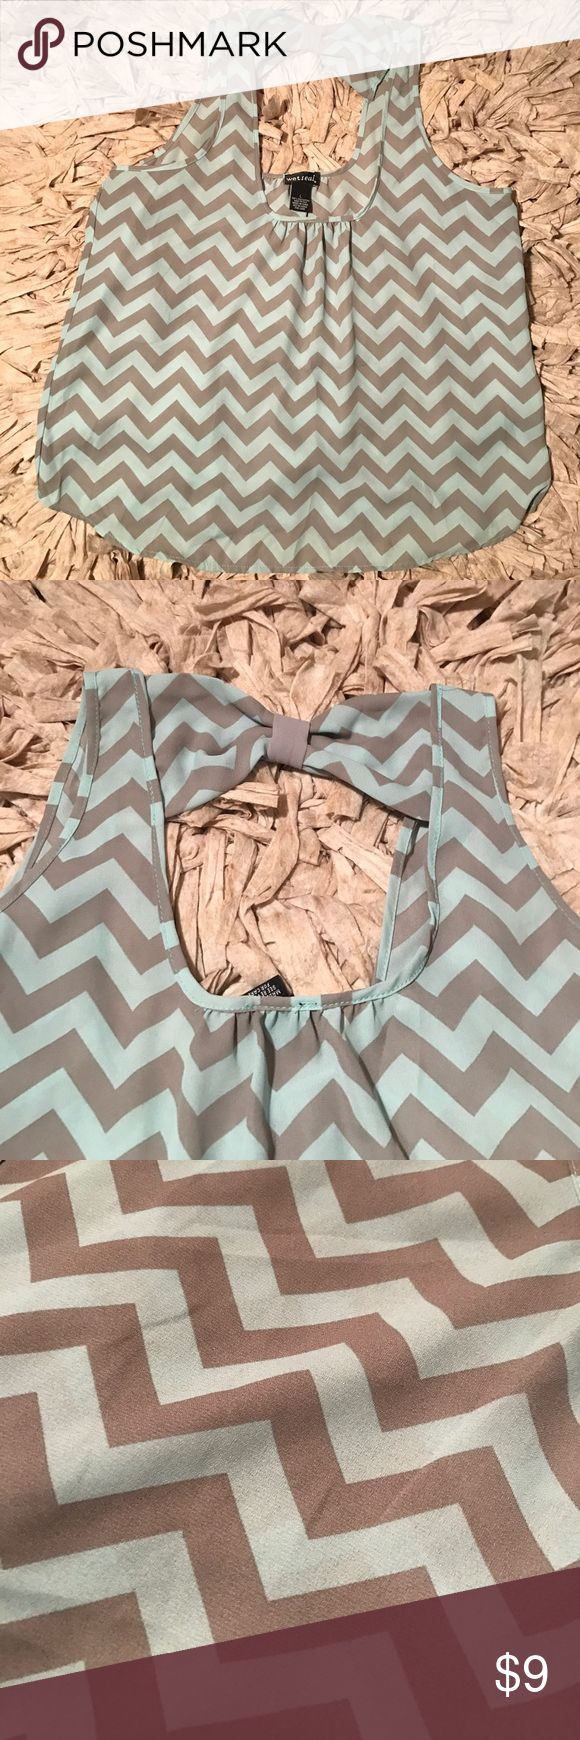 Chevron blouse with bow back detail Large Grey and teal chevron blouse with a bow back detail. Size Large. Wet Seal Tops Blouses